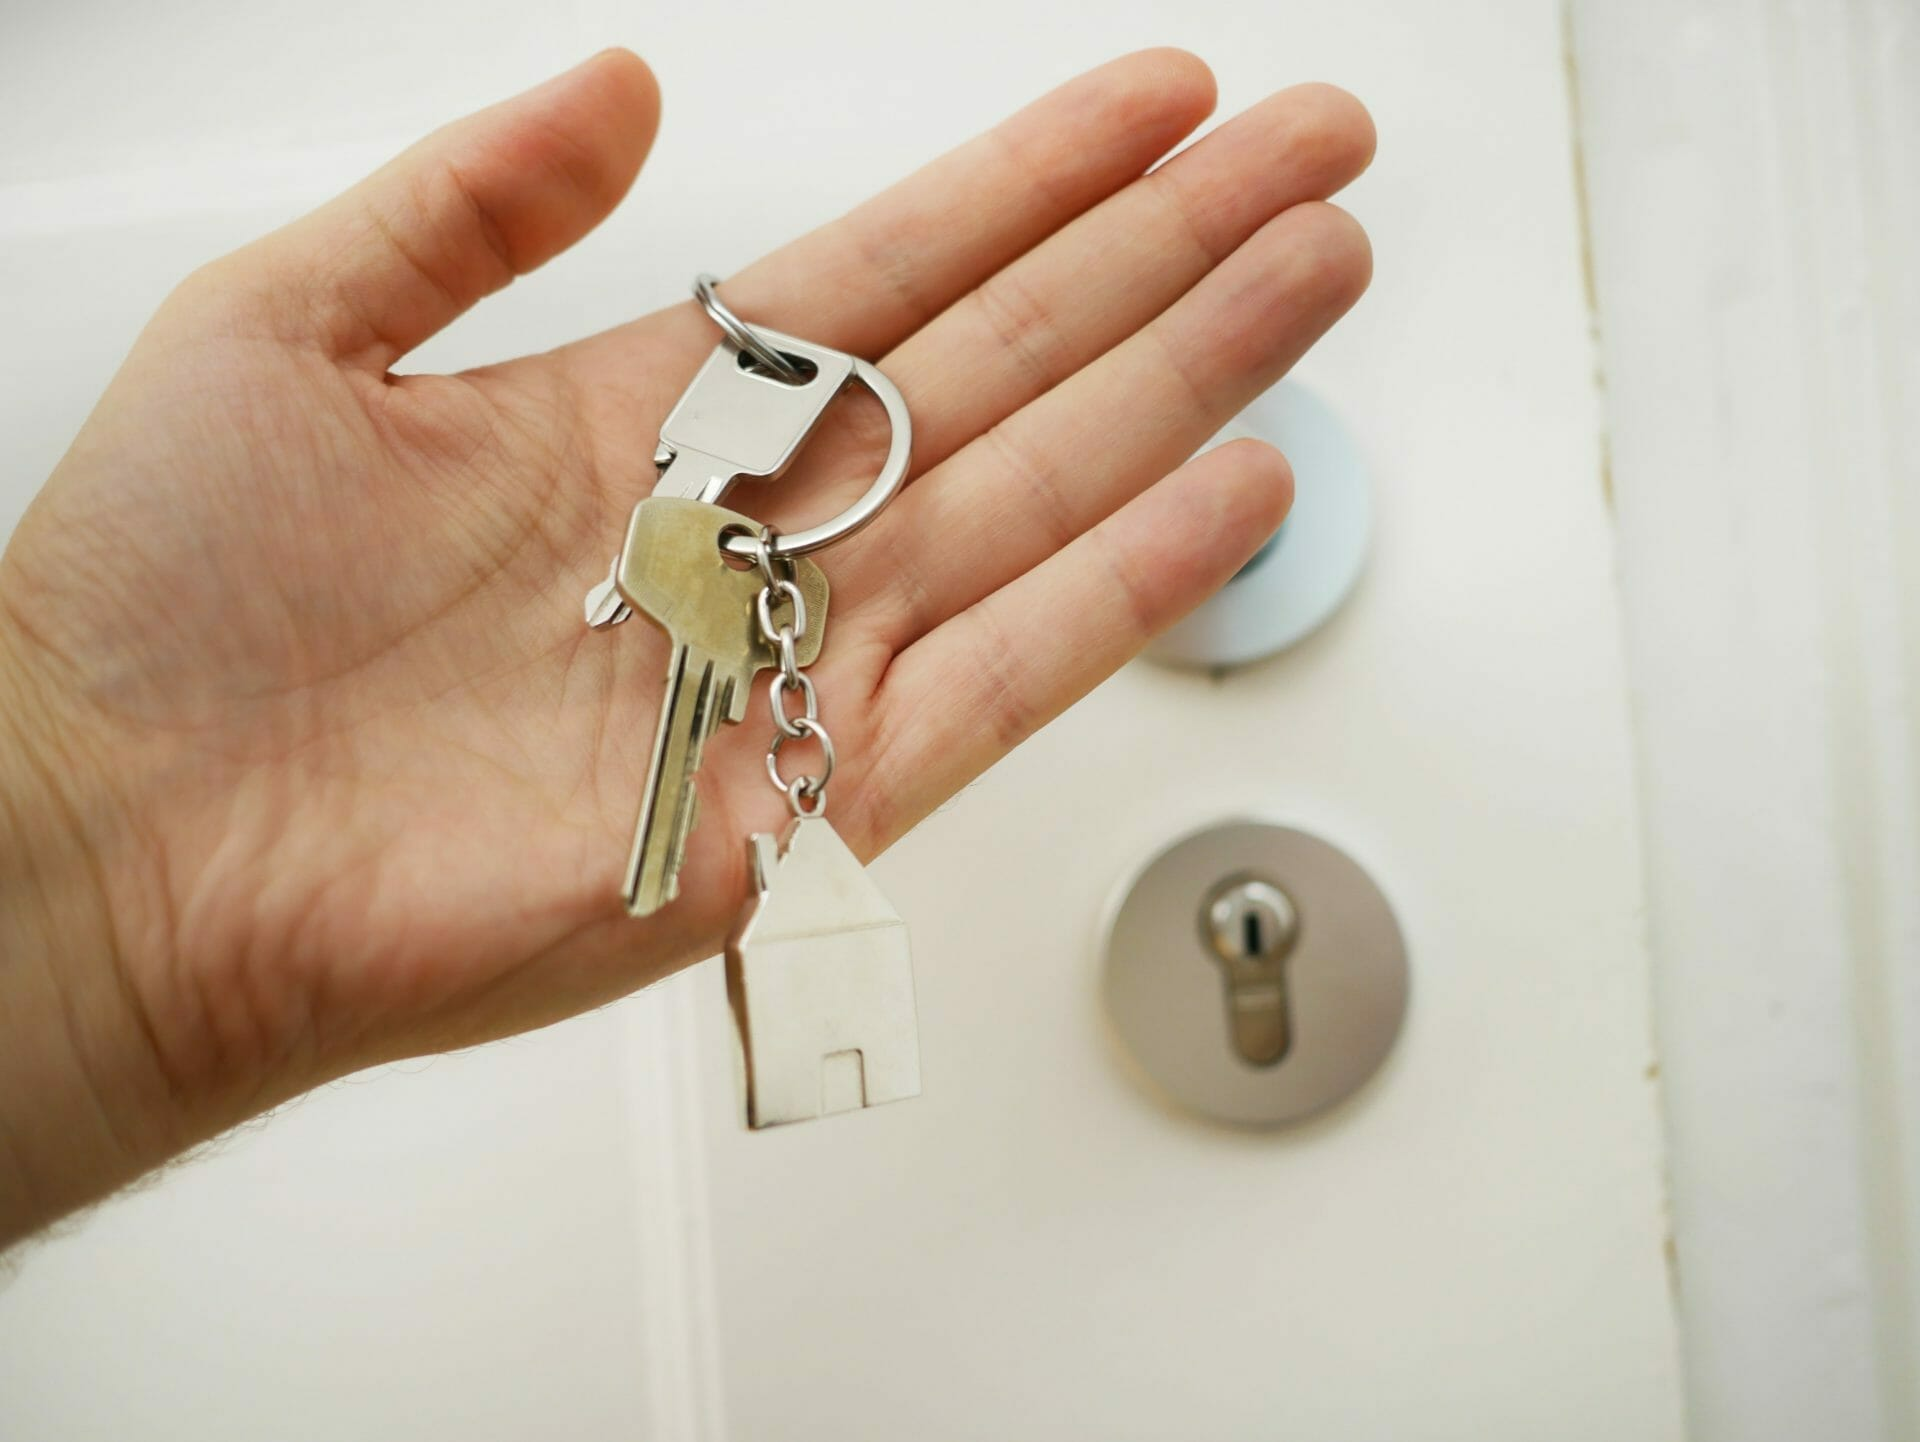 Picture of house keys on keychain for Real Wealth Show Podcast Episode #722